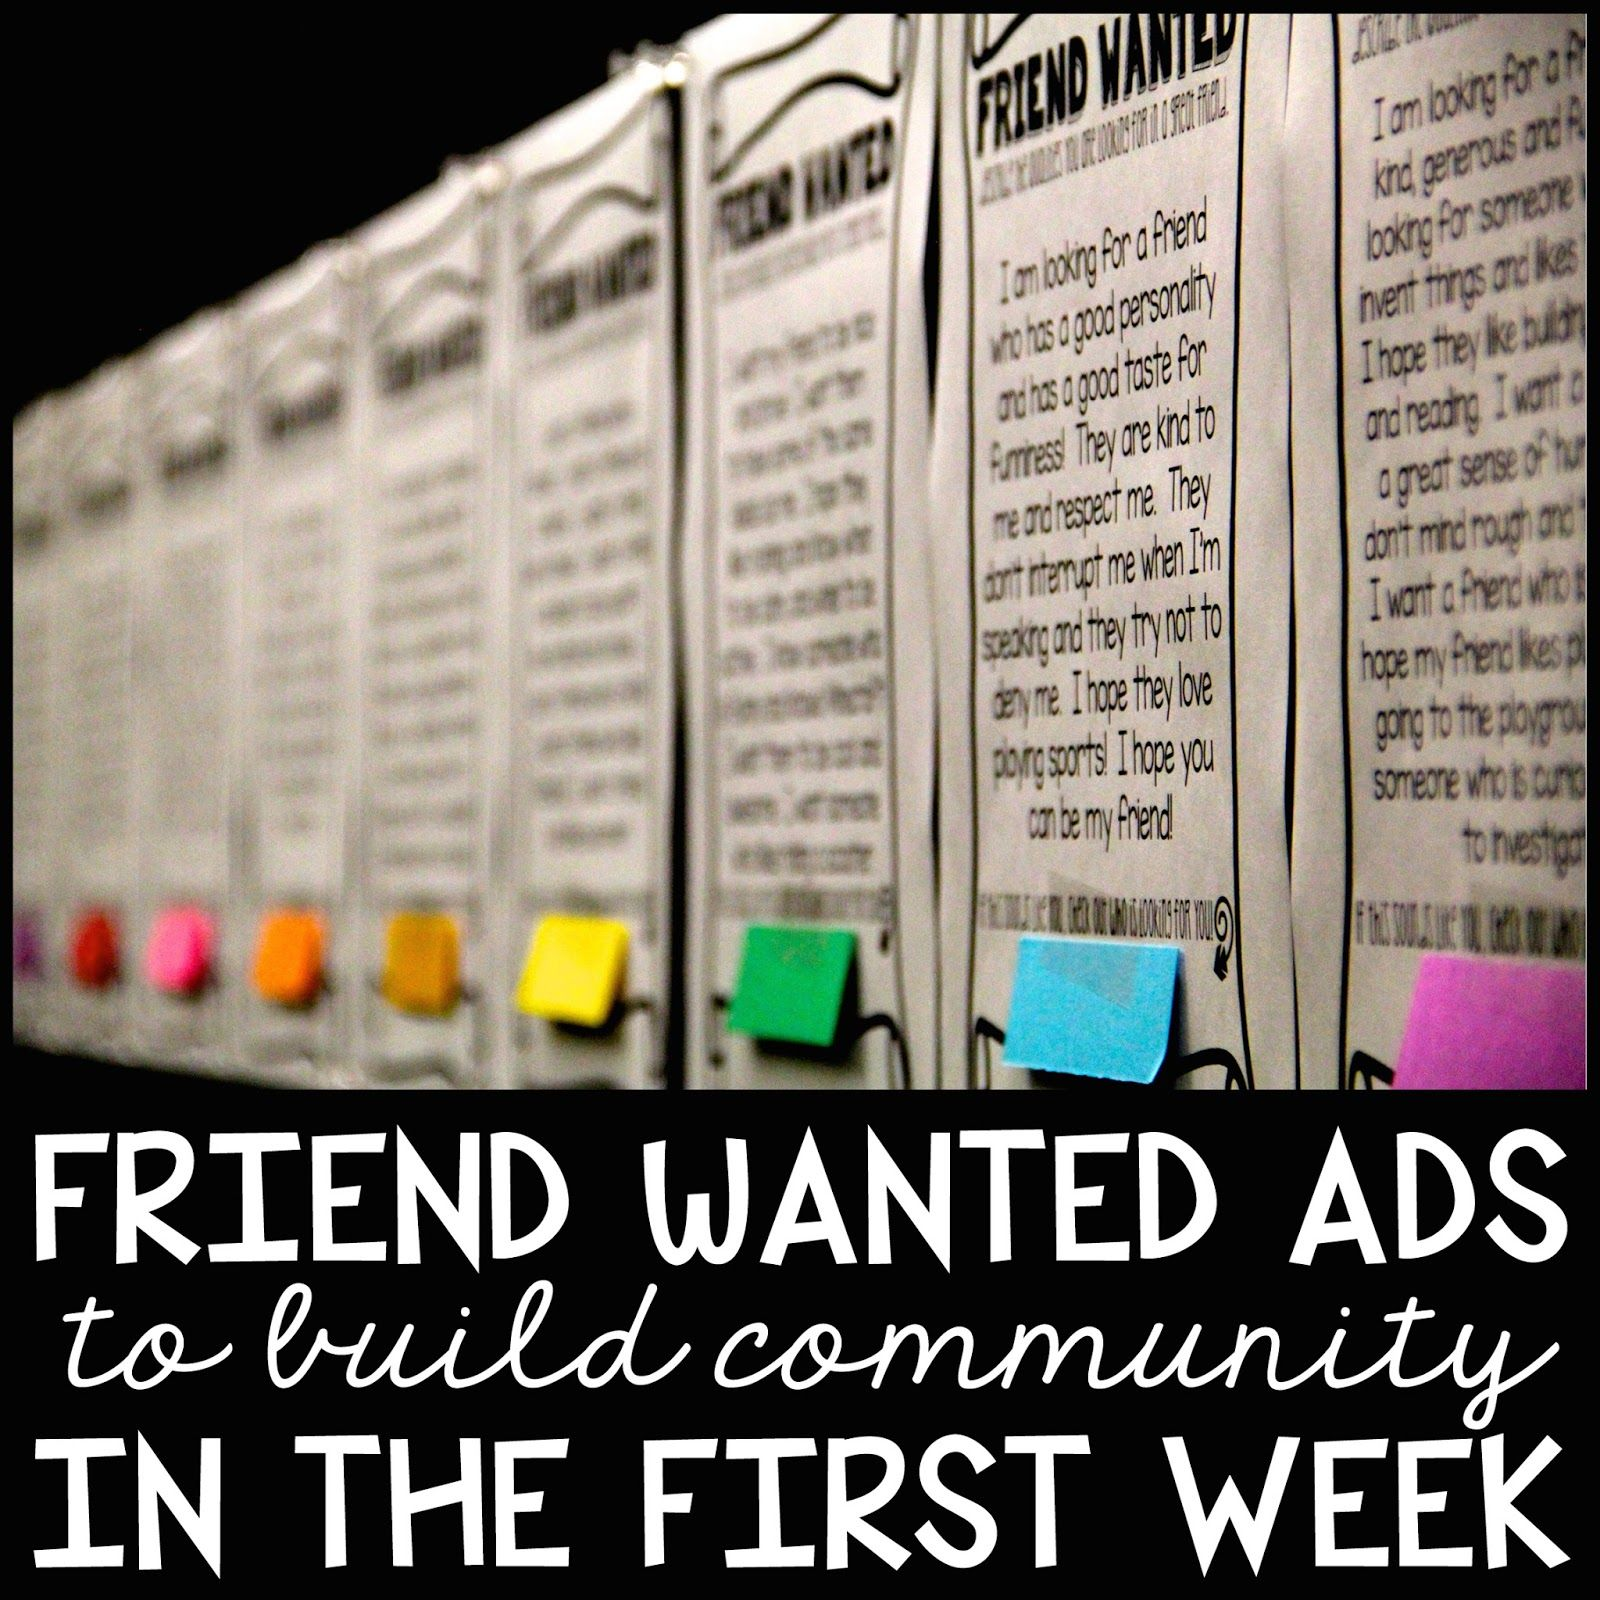 Iteach Third Back To School Friend Wanted Ads I Want To Adapt For Music Class By Changing To